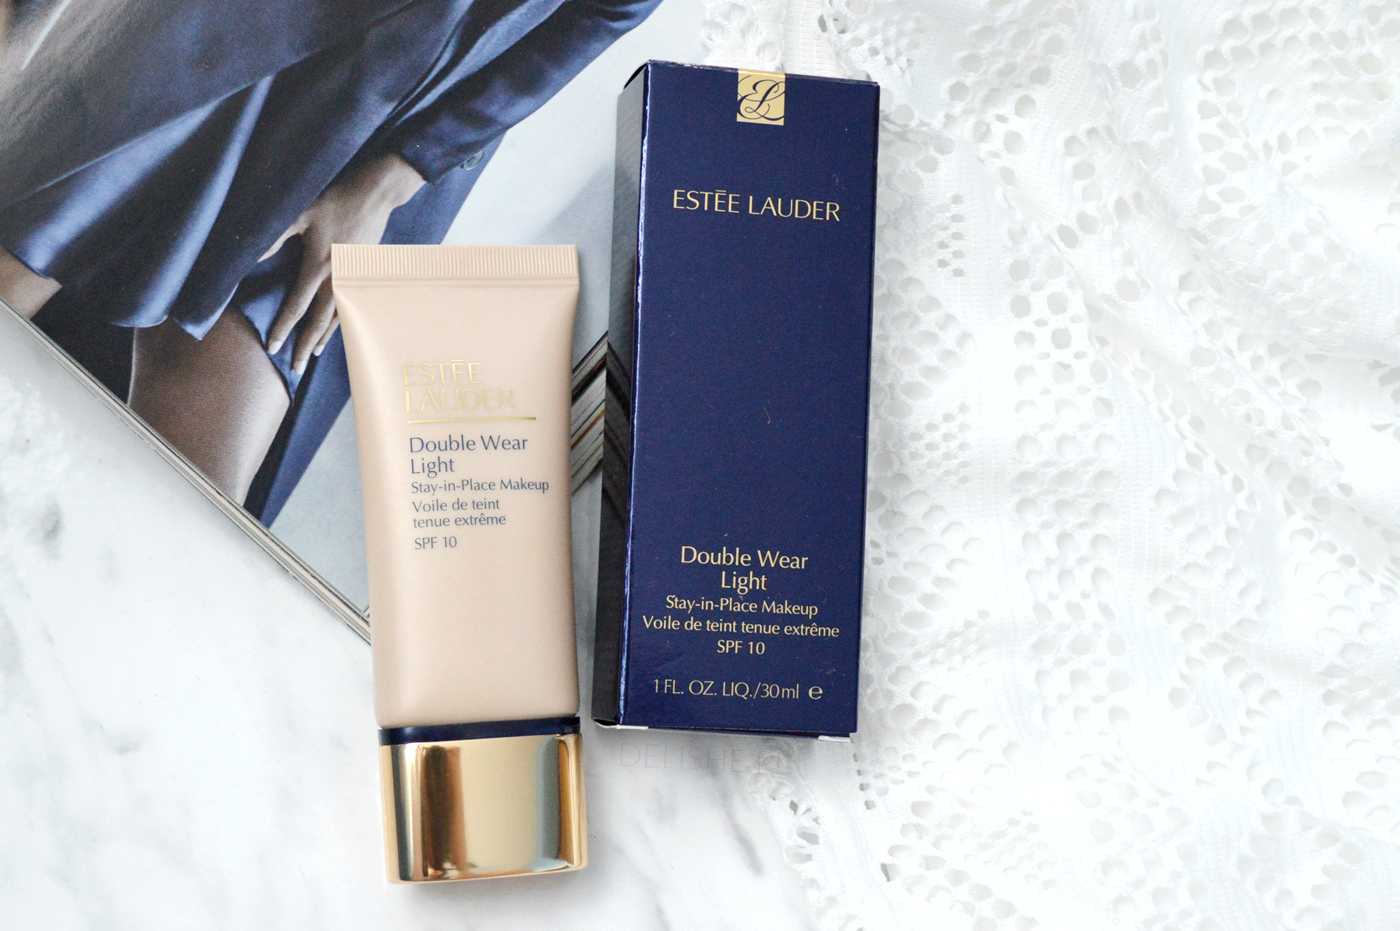 estee lauder double wear light podkład haul